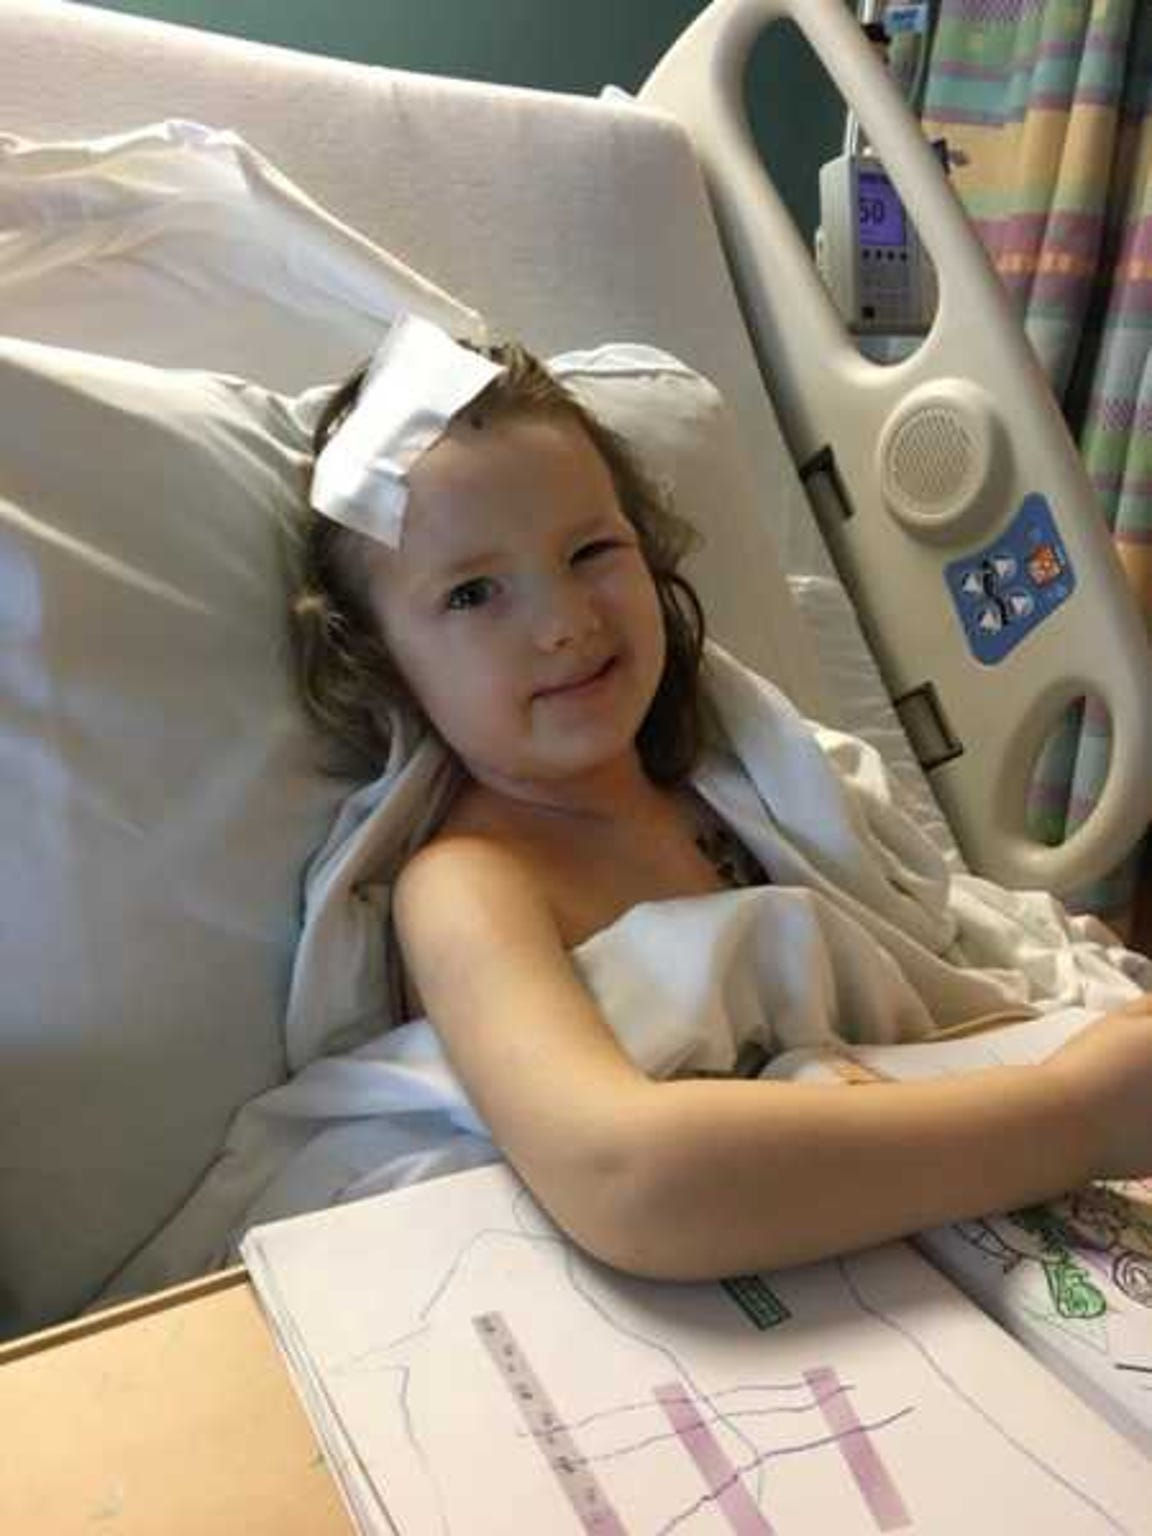 Addy continues to smile through the demon that is cancer.